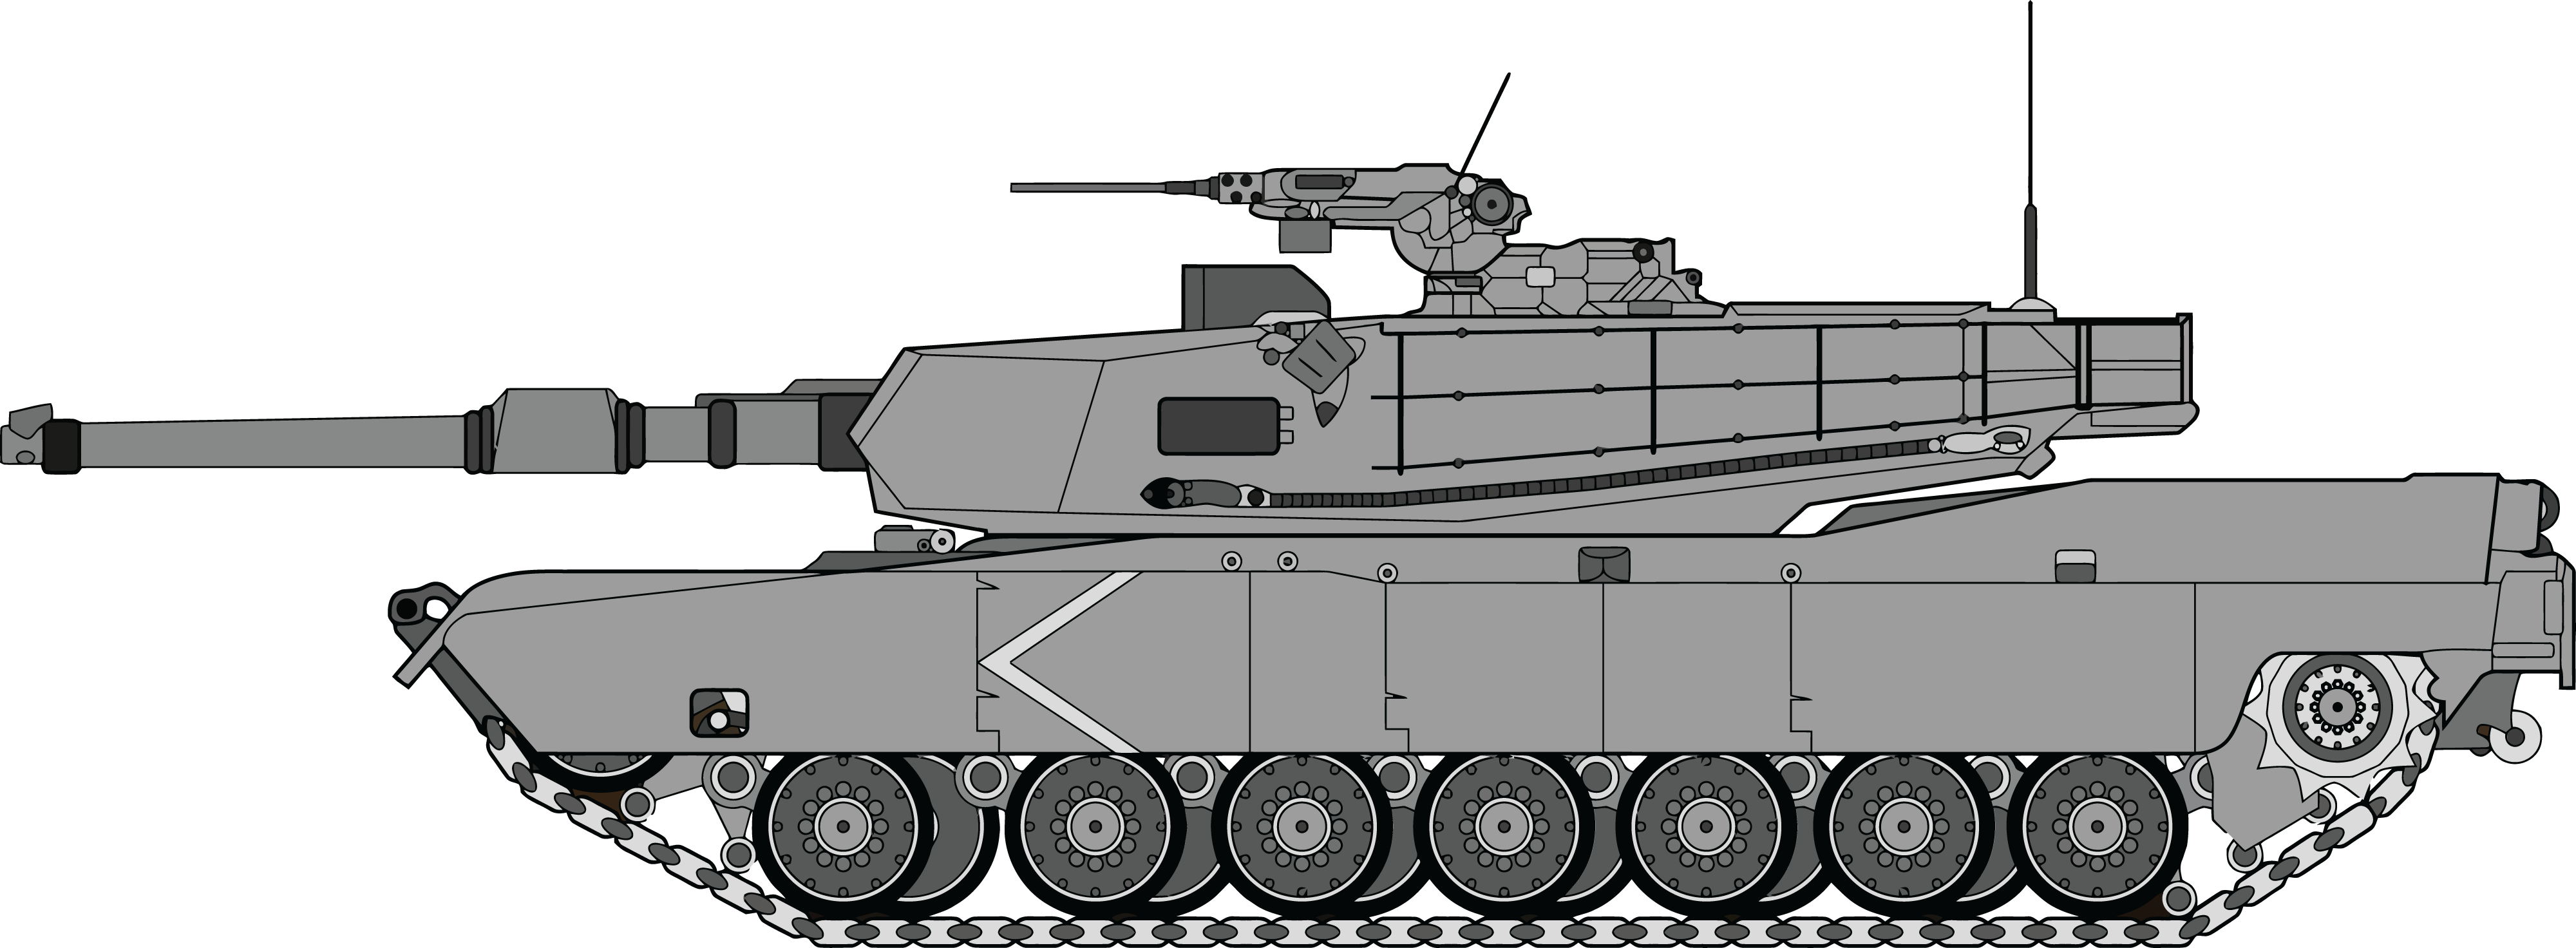 free clipart of an army tank rh free clipartof com military tank clipart army tank clipart black and white